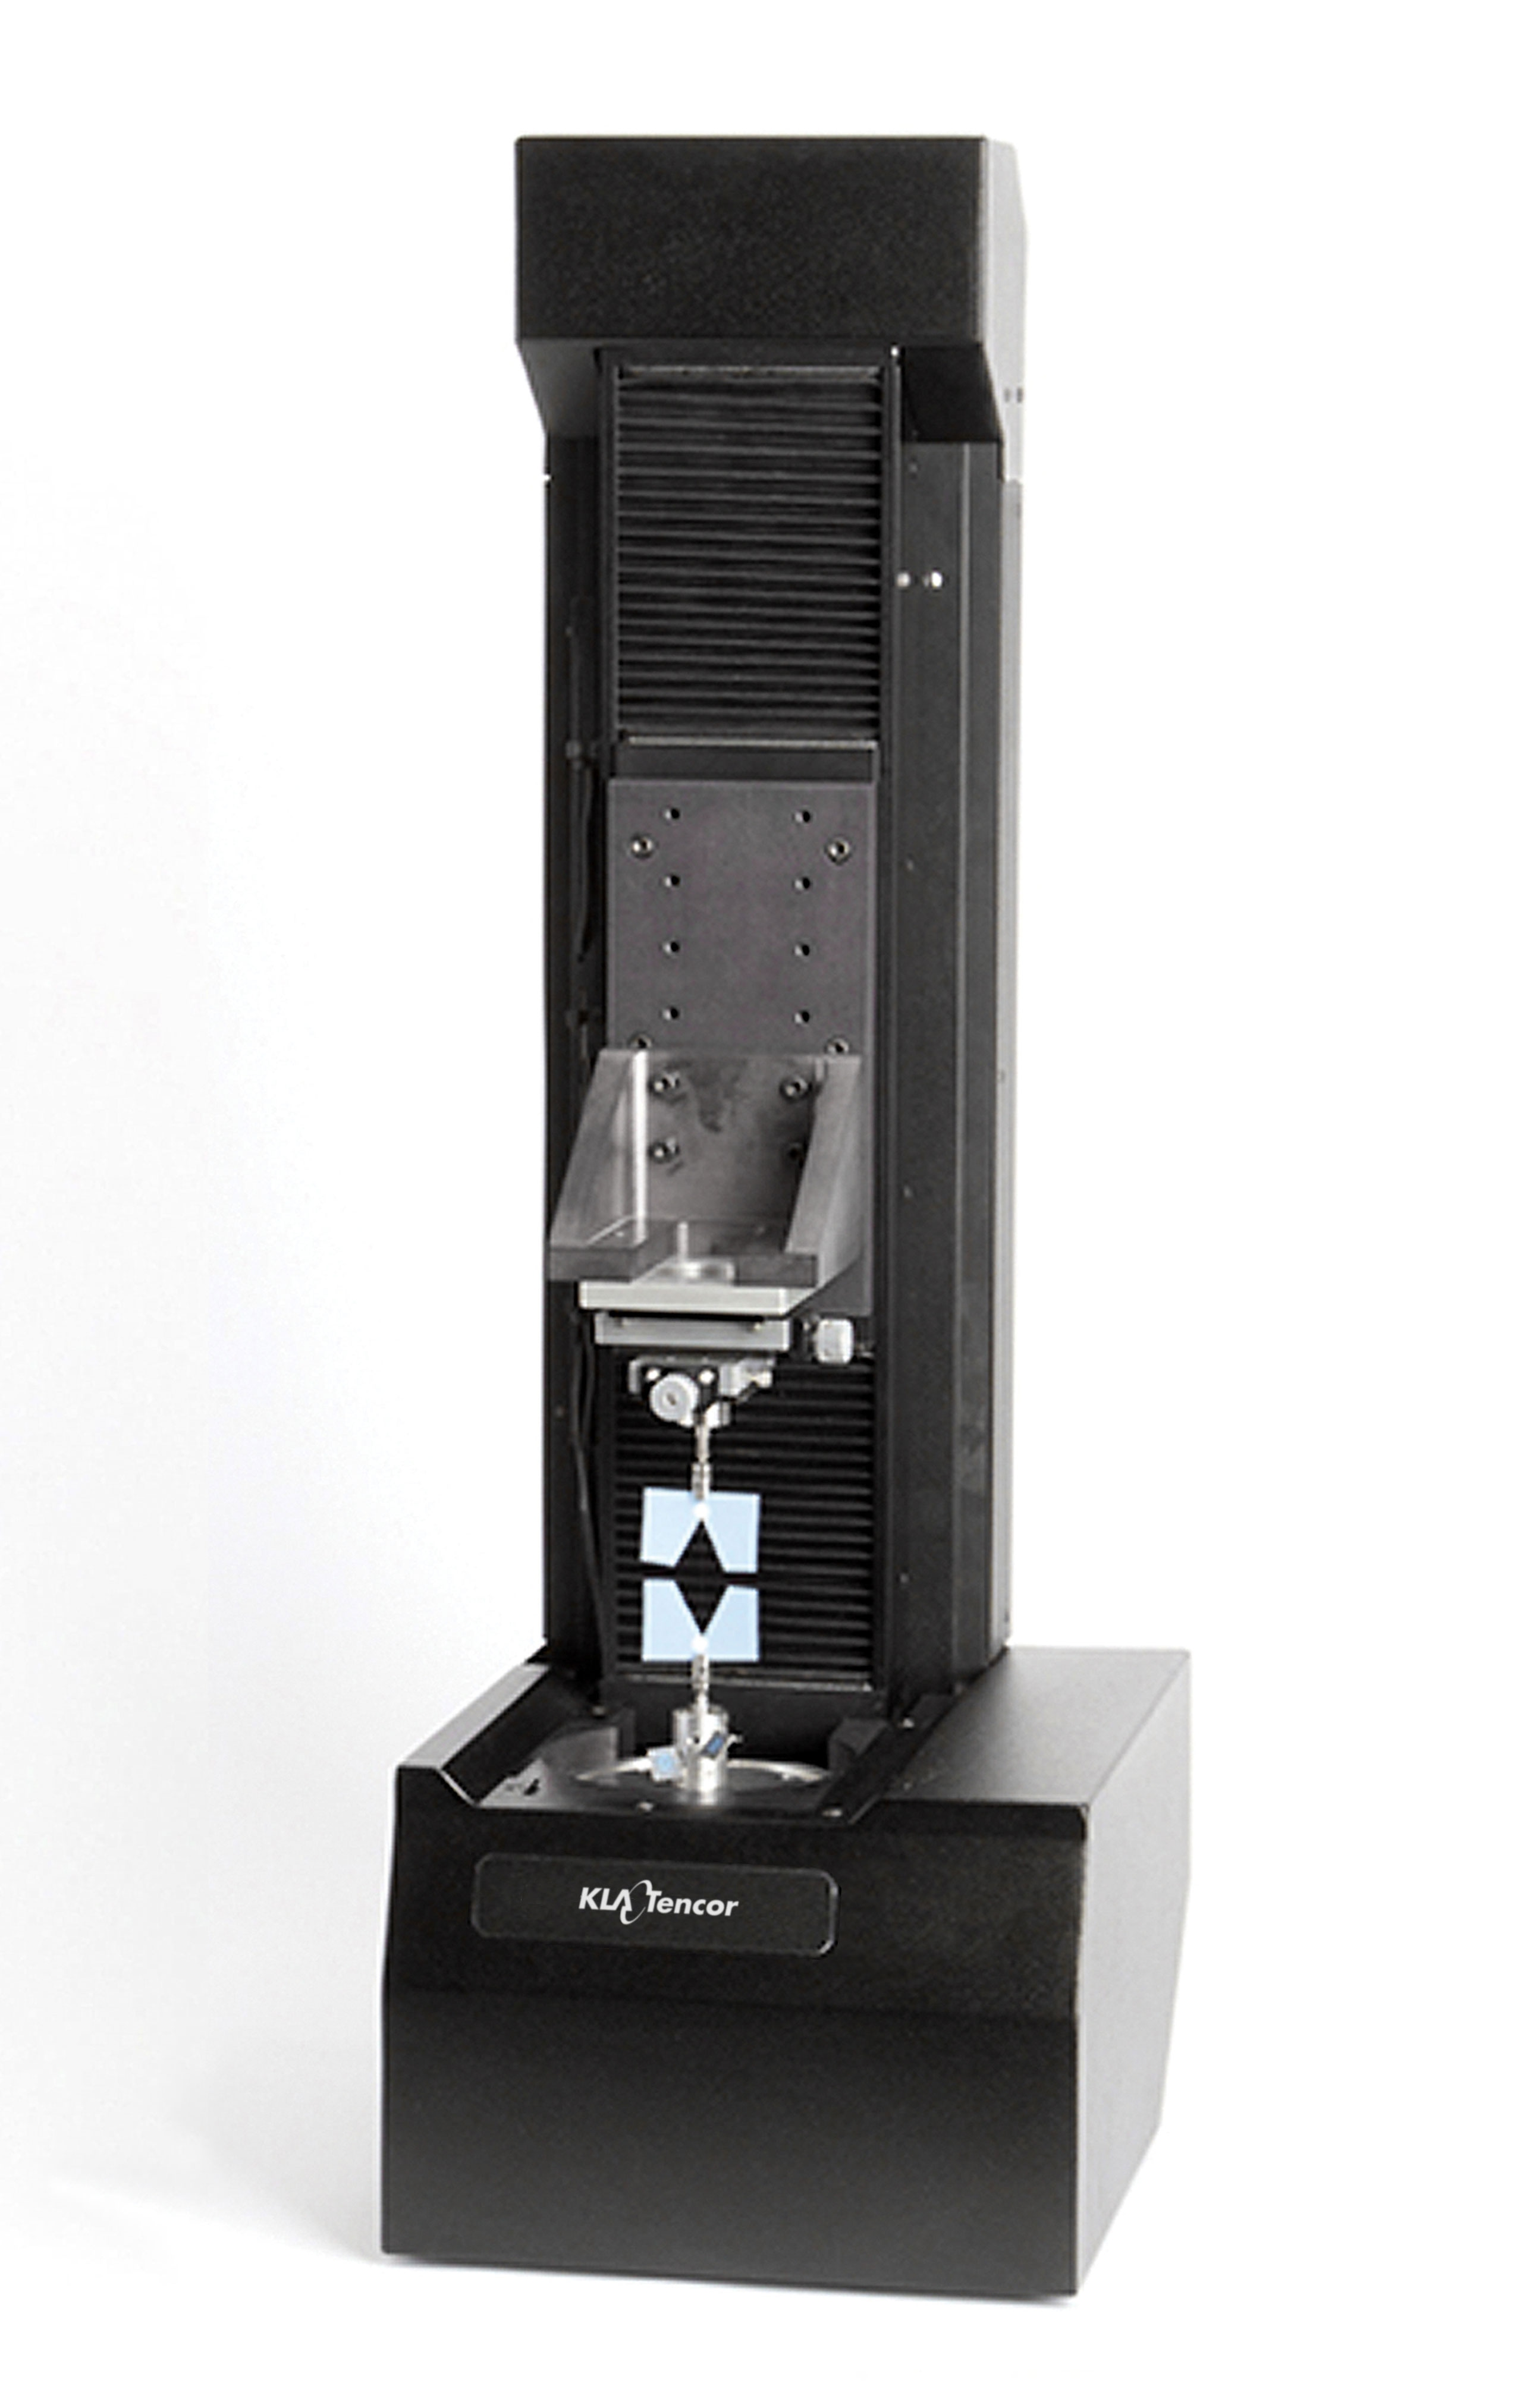 Universal Testing Machine for Nanomechanical Characterization - T150 from Agilent